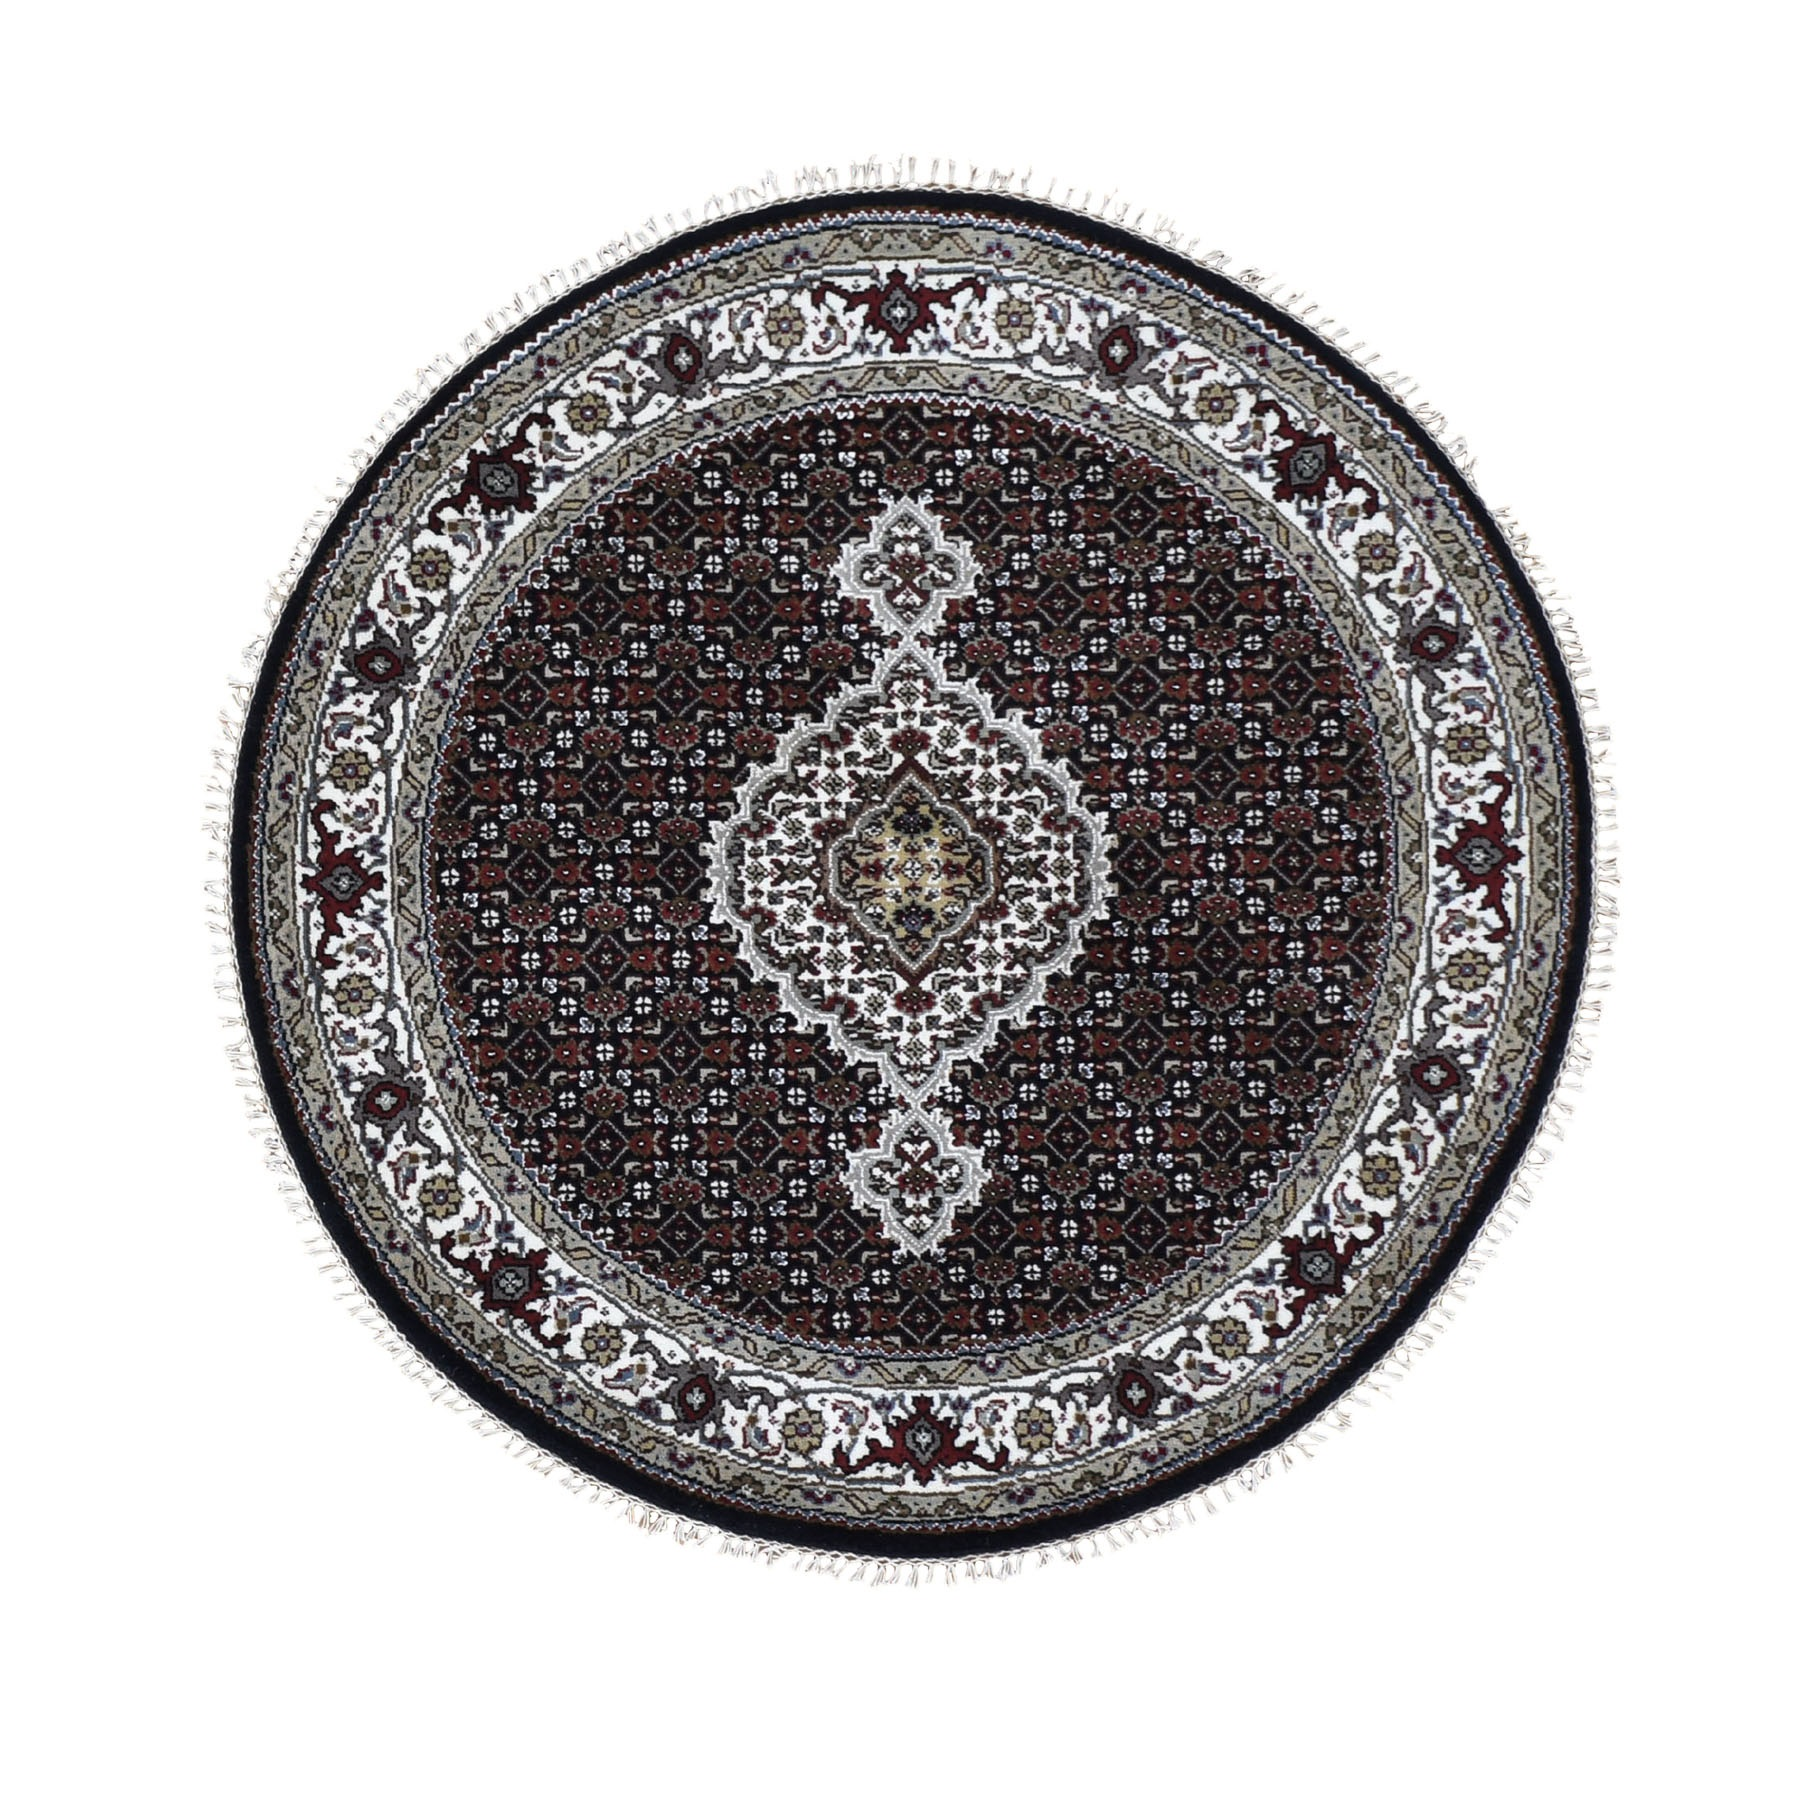 Pirniakan Collection Hand Knotted Black Rug No: 0196182